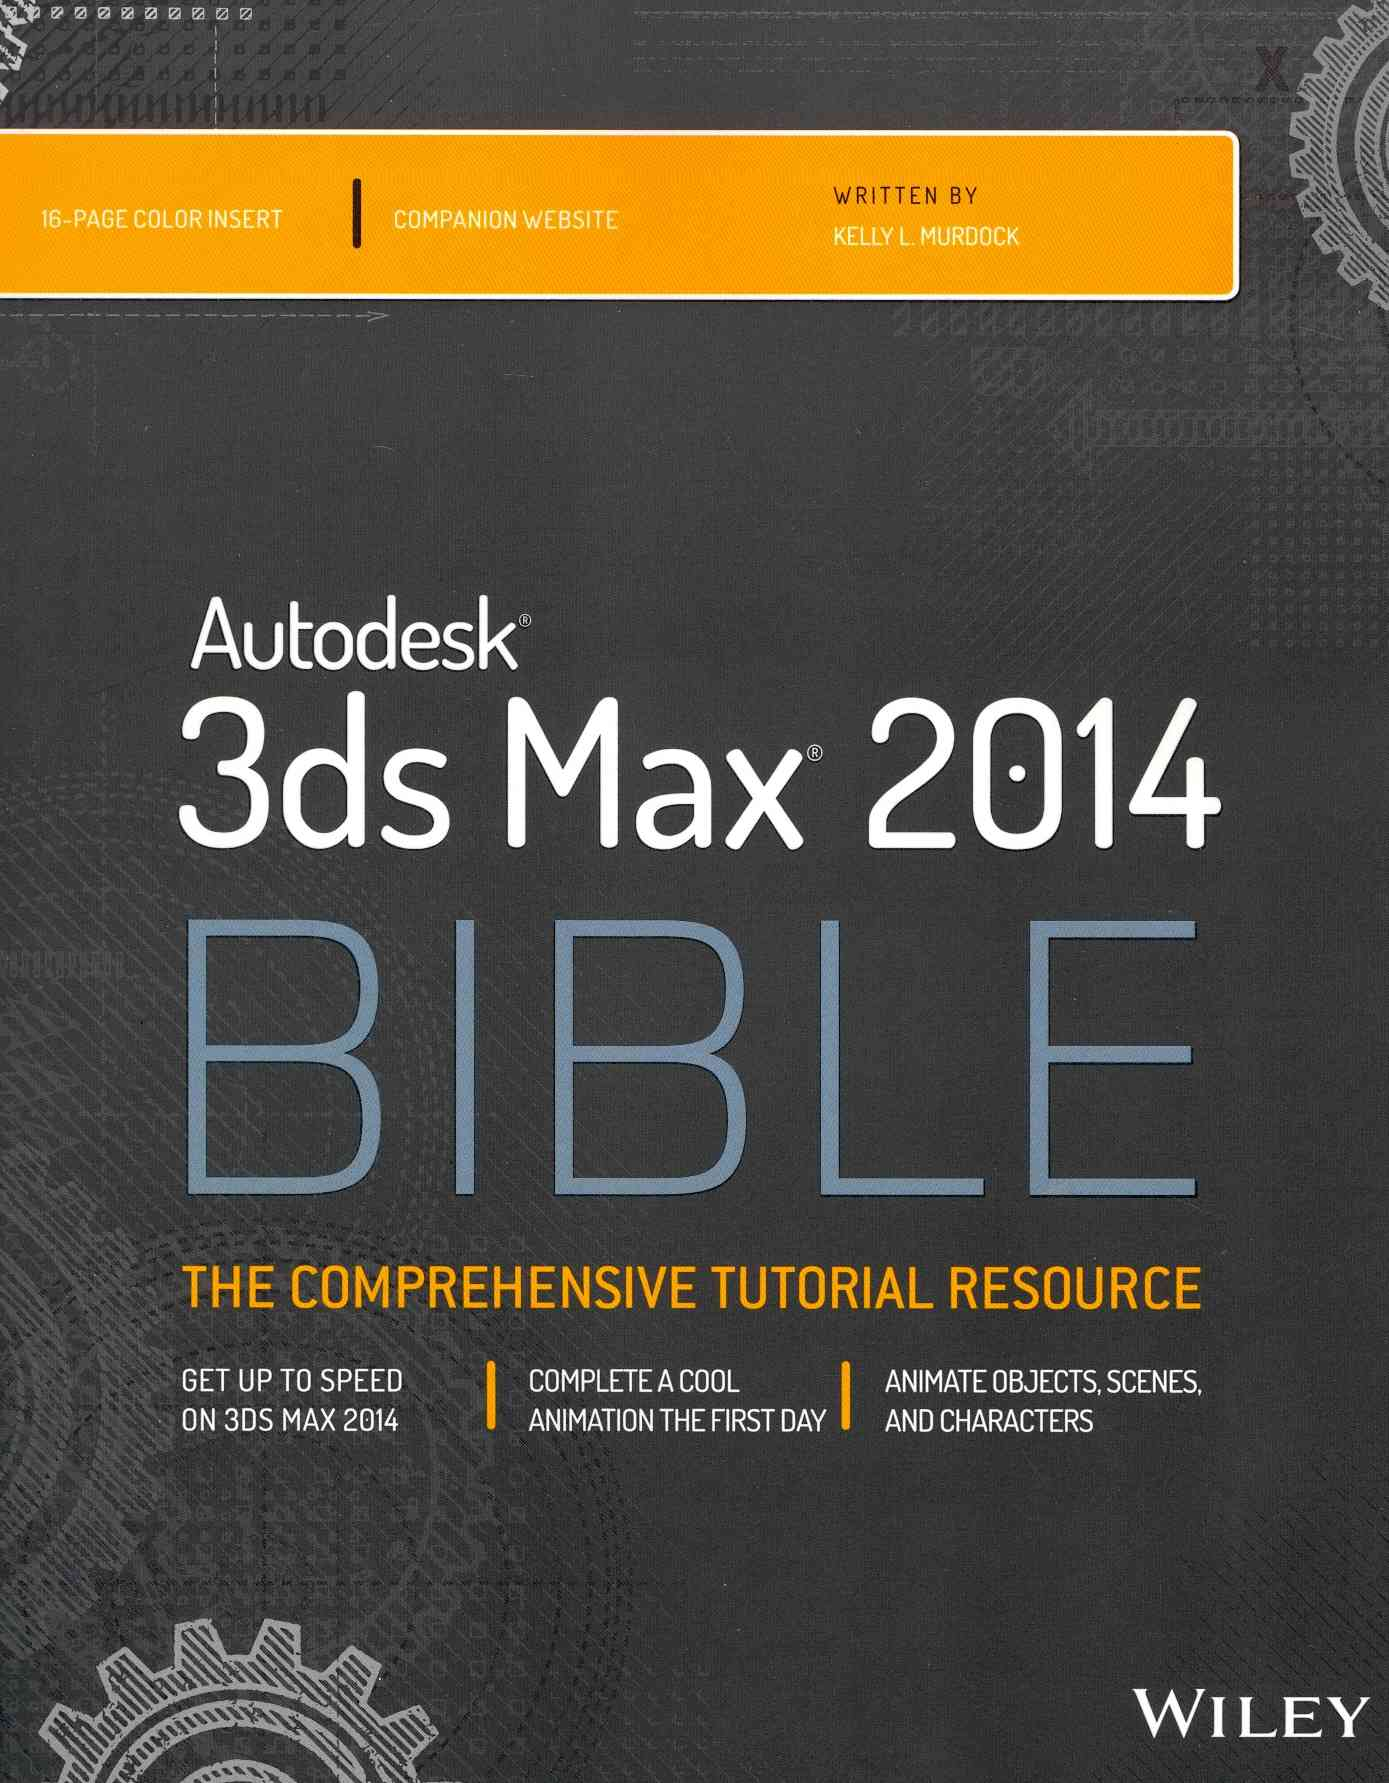 Autodesk 3DS Max 2014 Bible By Murdock, Kelly L.